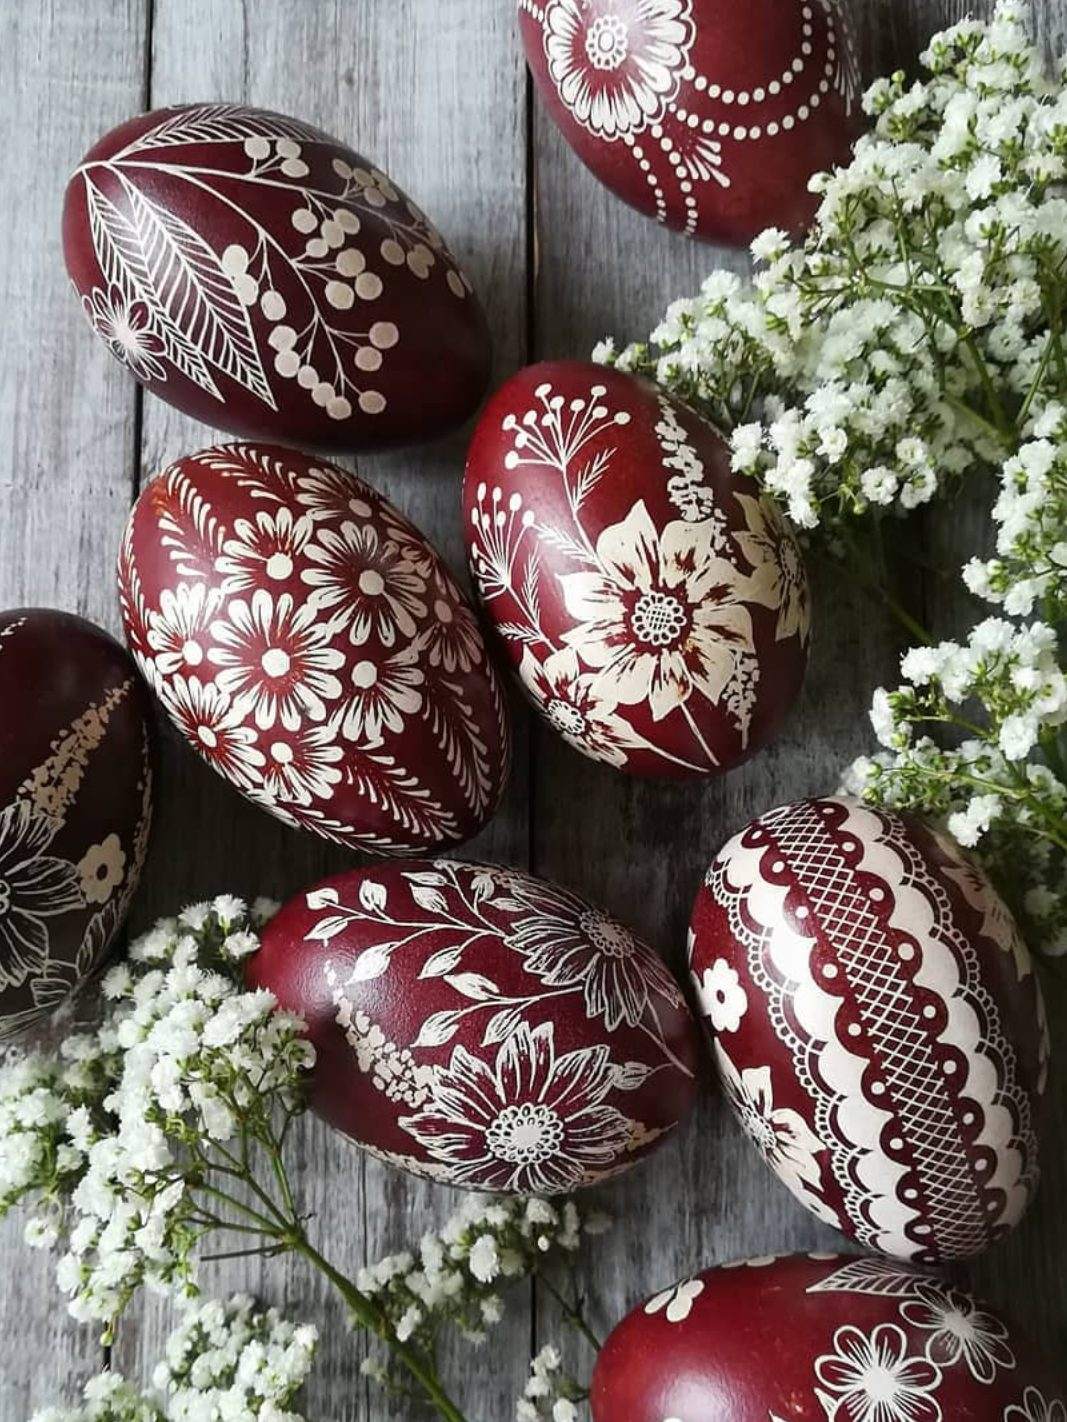 Burgundy Easter eggs with intricate pattern